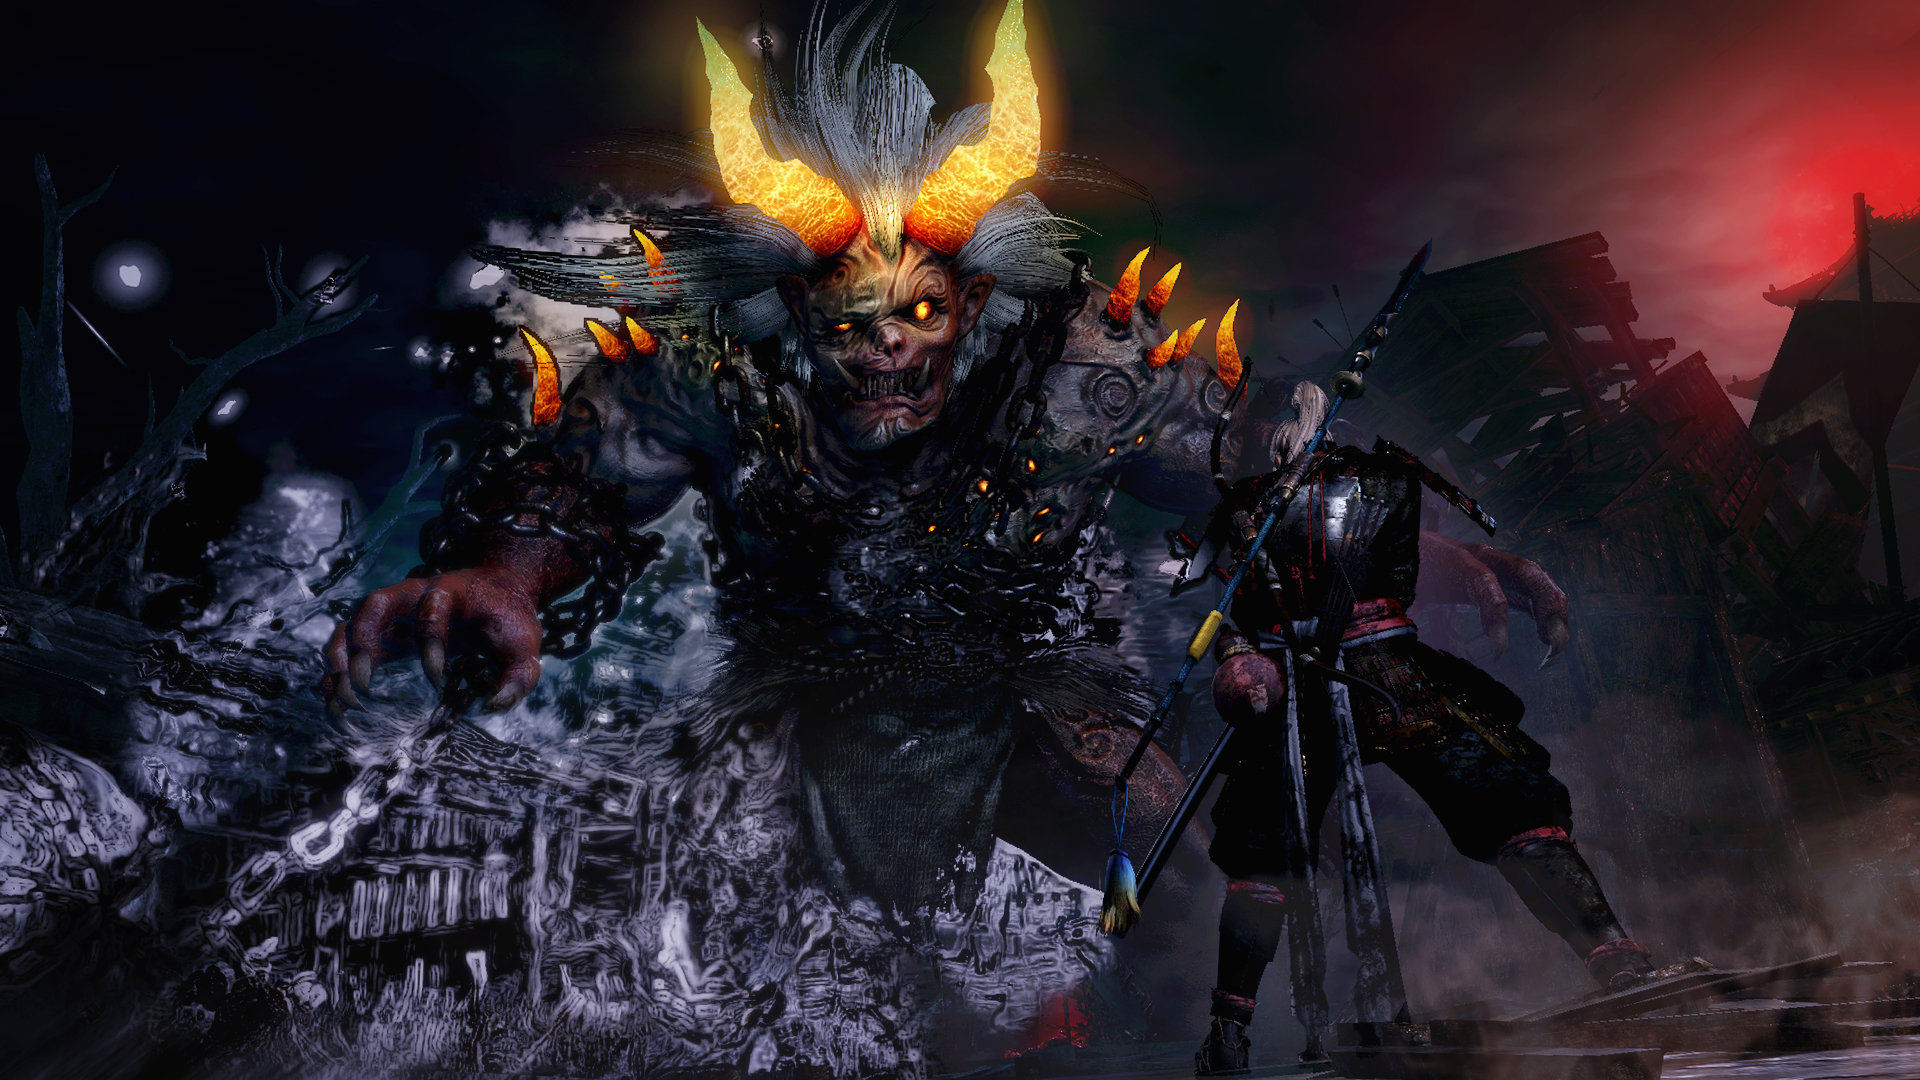 nioh vs dark souls